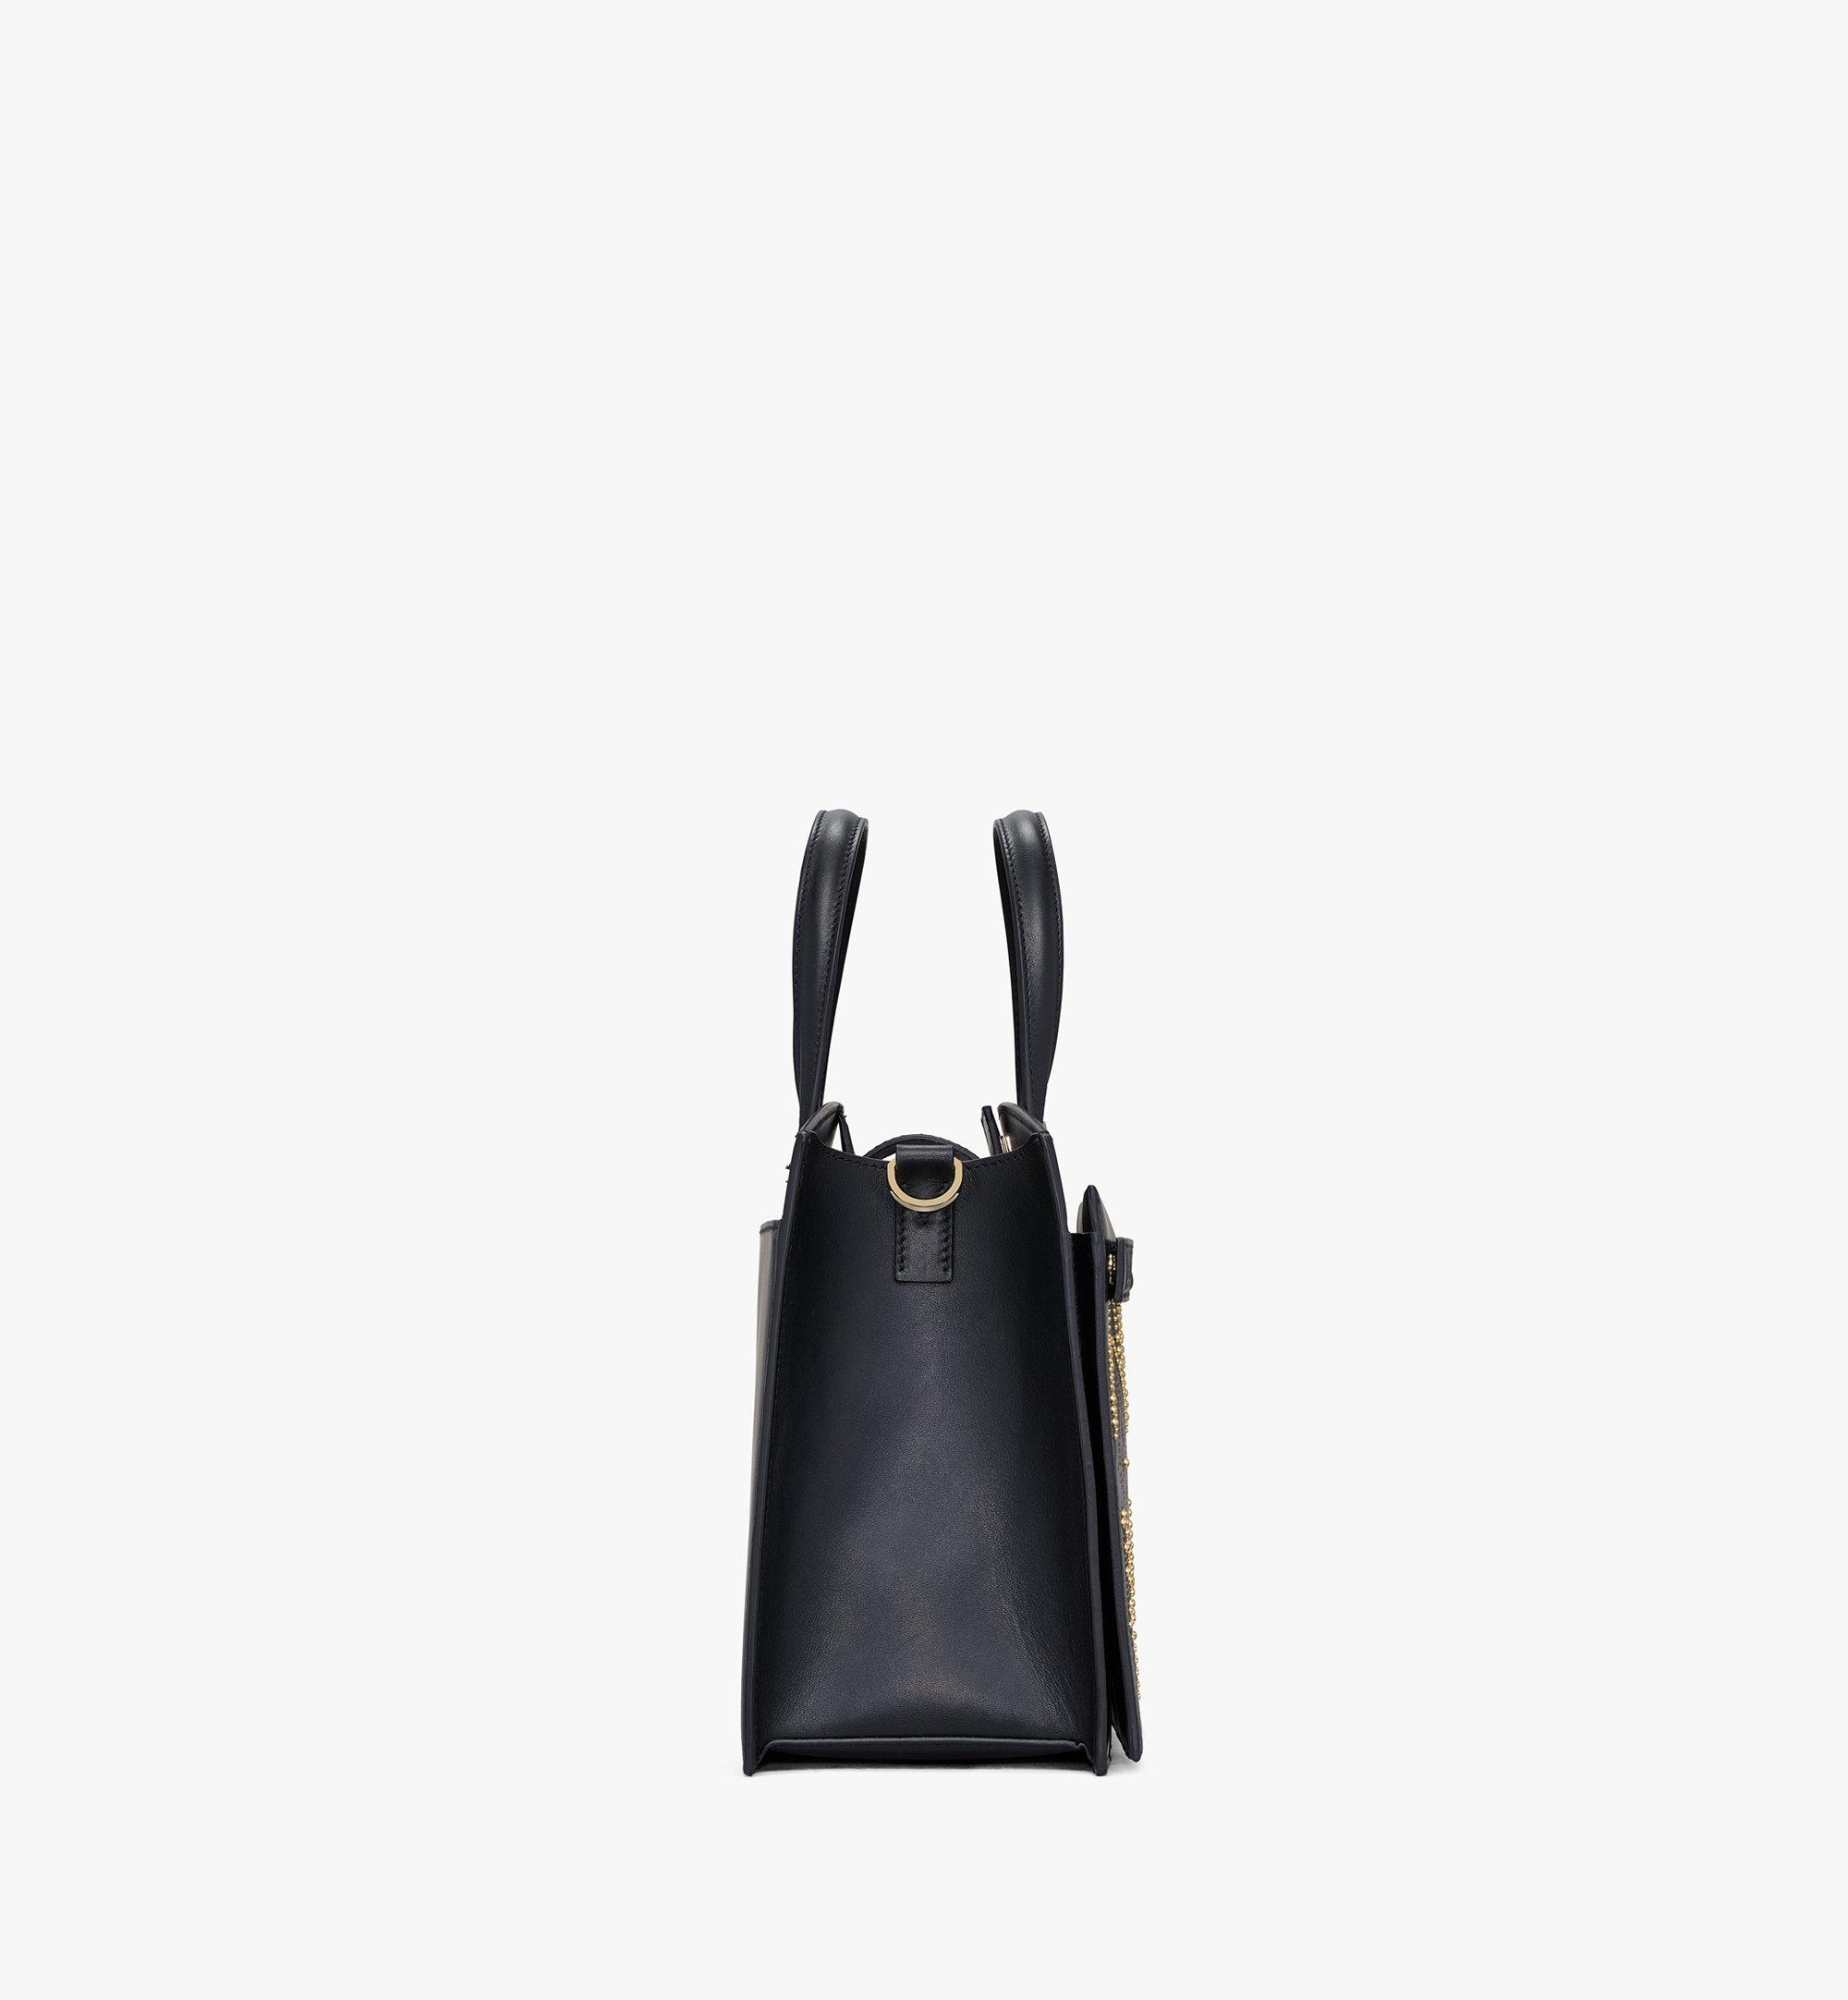 MCM Milano Lux Tote in Studded Leather Black MWTAADA03BK001 Alternate View 2